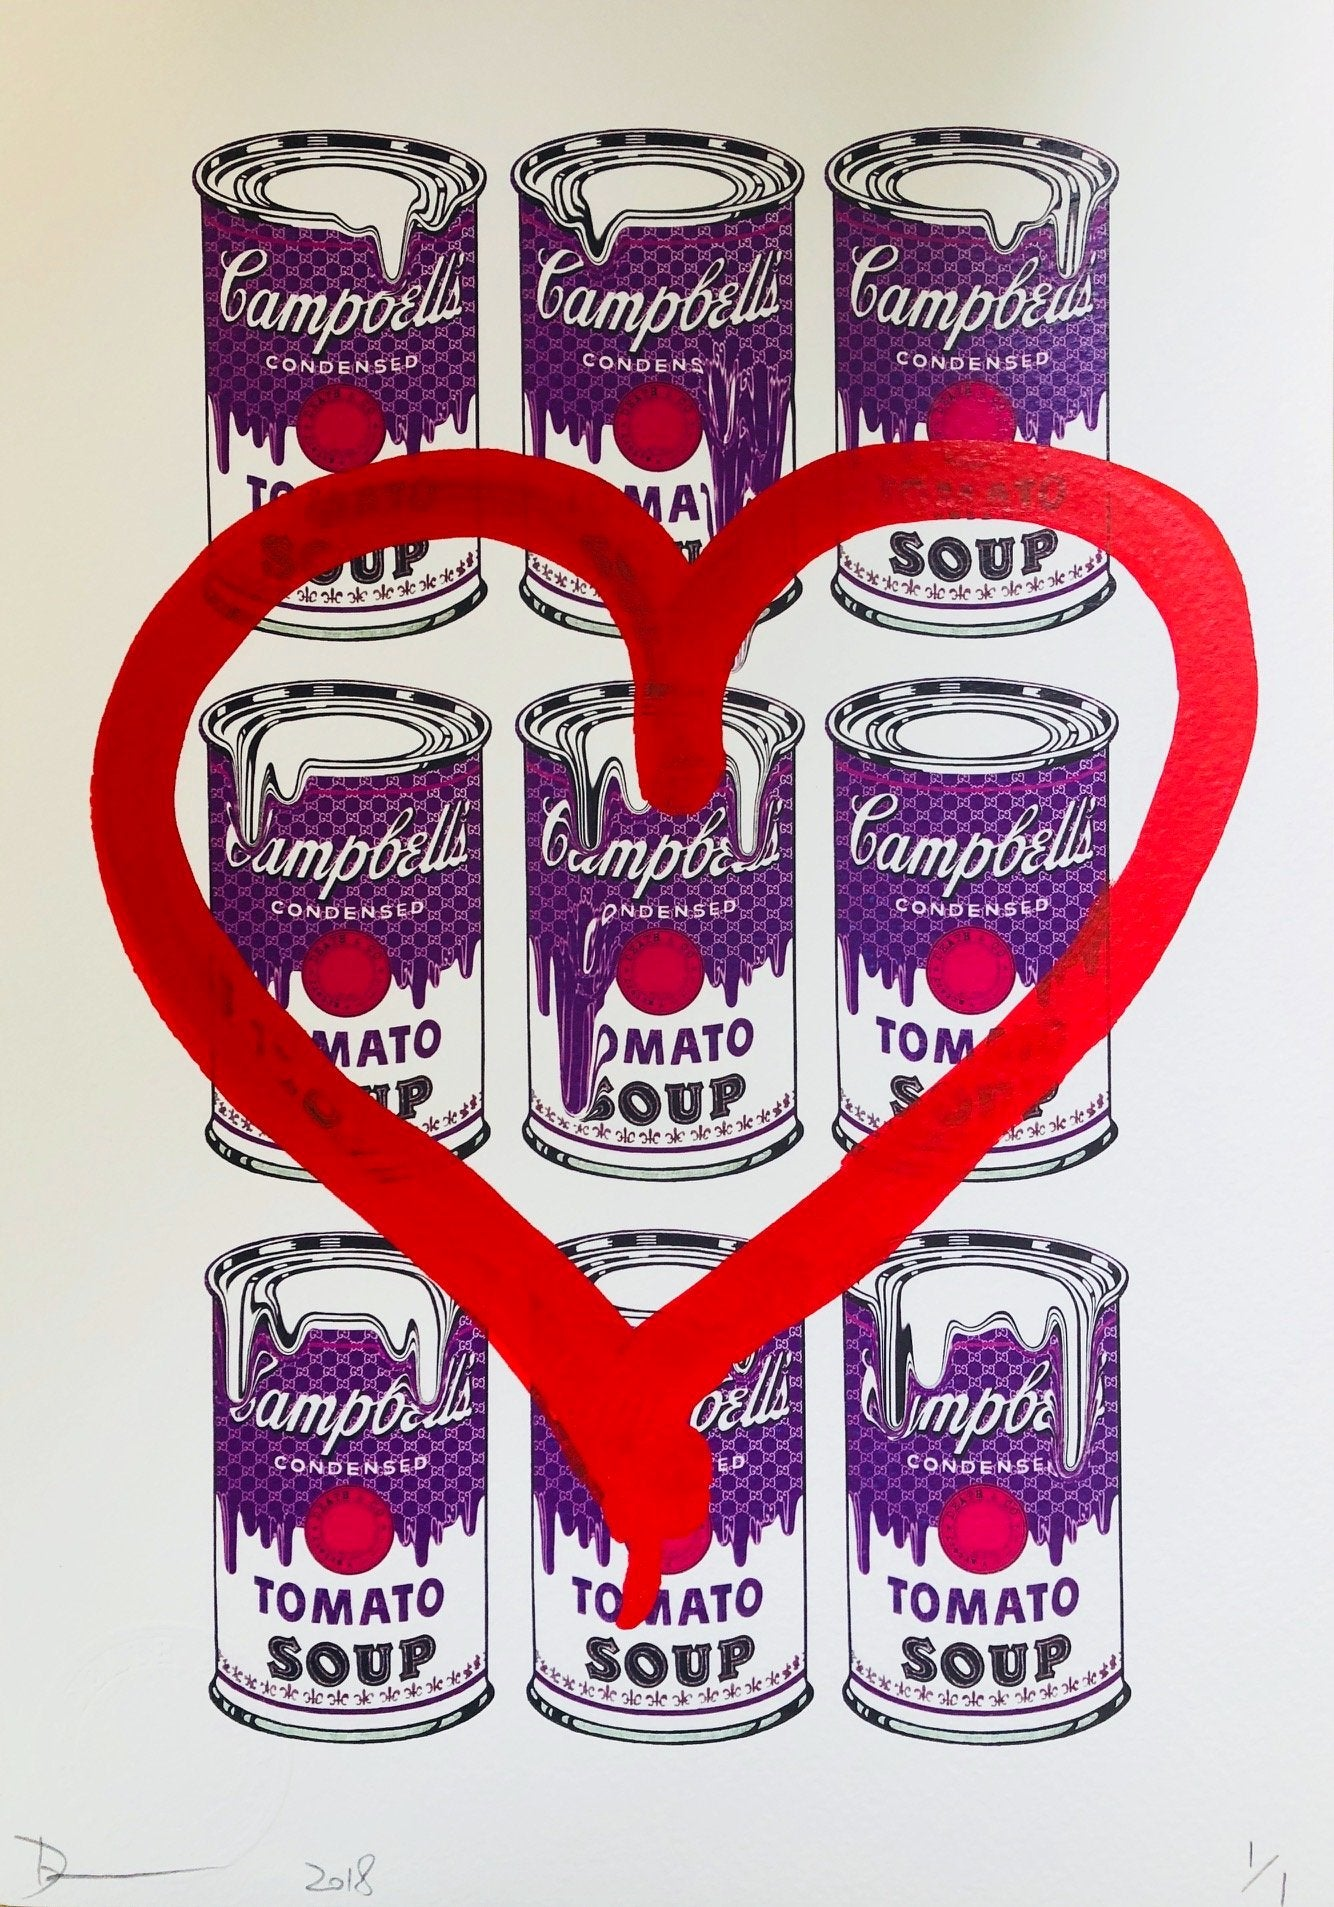 9 Can Soup Heart 29x21cm (Edition of 1)